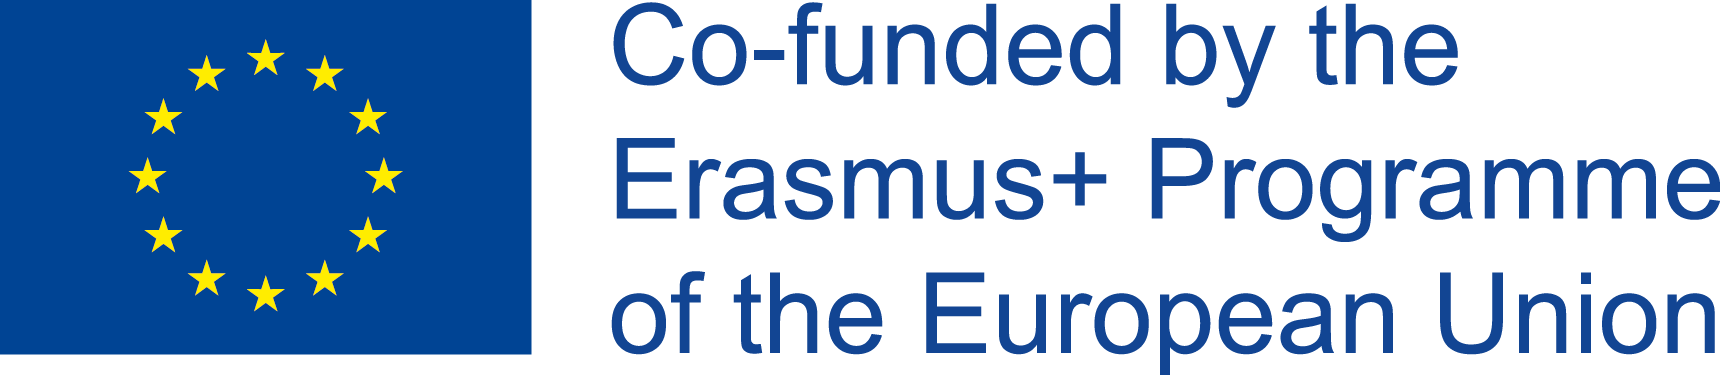 Co-funded by the Erasmus Programme